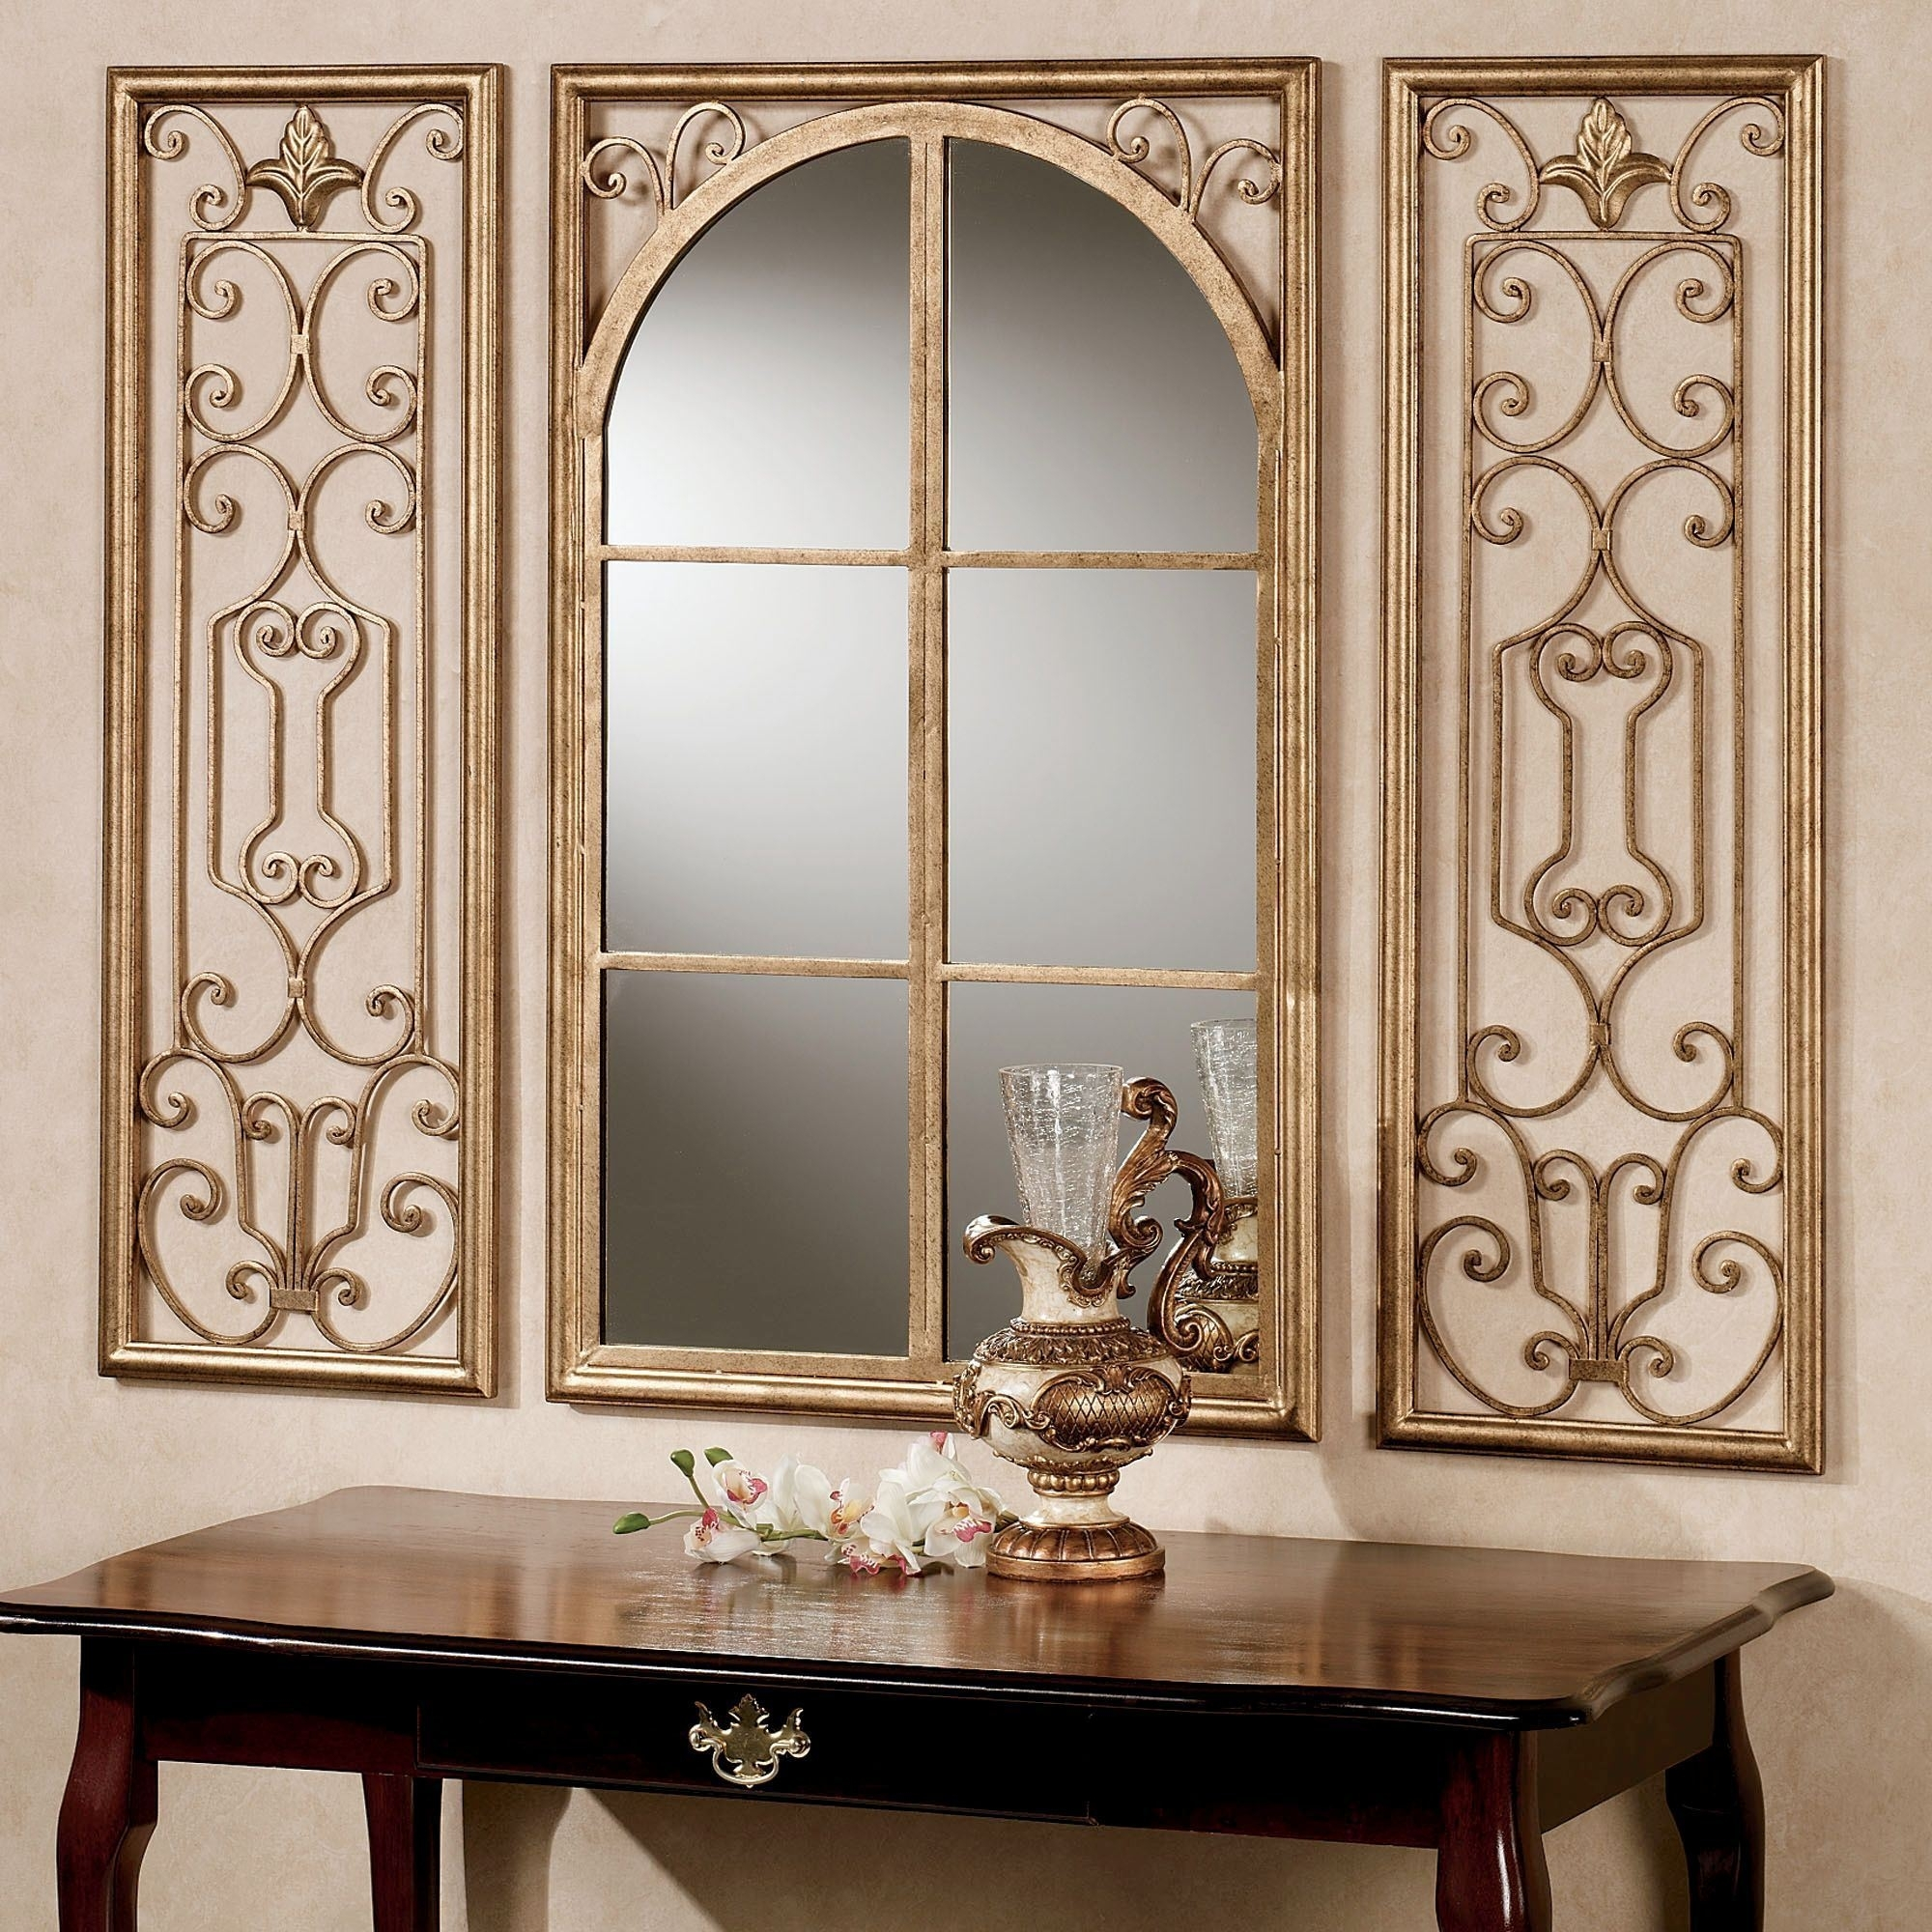 Mirrors : Window Mirror Modern Wall Mirror Large Circle Mirror Pertaining To Most Recent Mirror Sets Wall Accents (View 8 of 15)